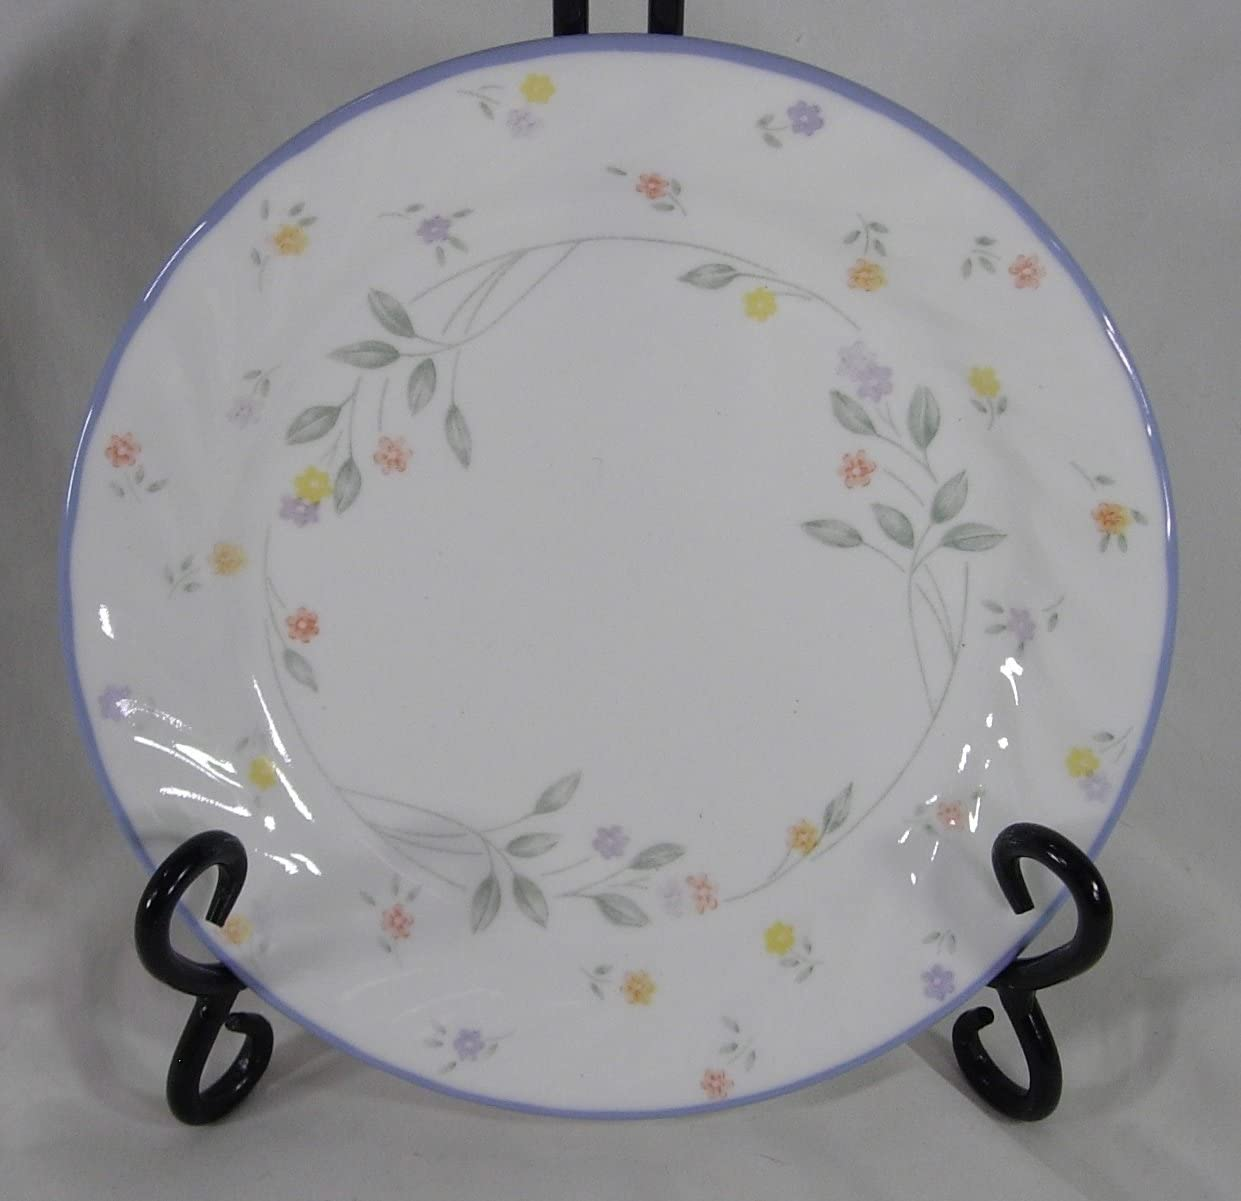 Corelle English Meadow Luncheon or Salad Plates 7